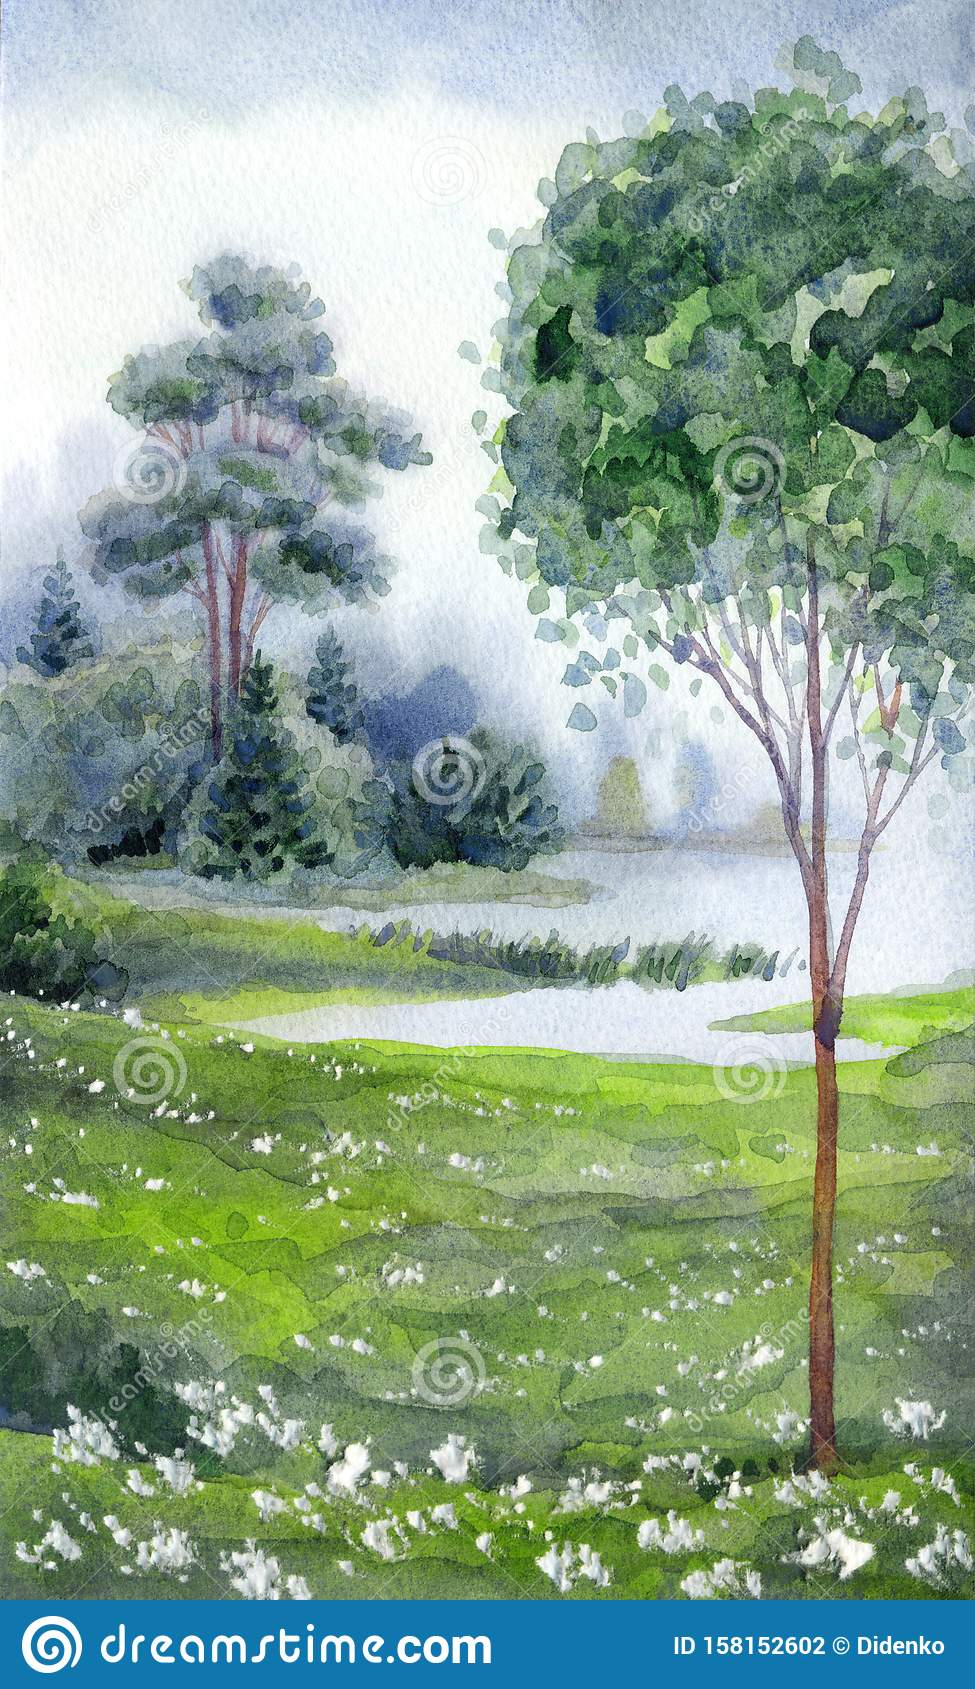 watercolor landscape forest near the lake stock illustration illustration of background beach 158152602 https www dreamstime com watercolor landscape forest near lake hand drawn watercolour paint sketch quiet haze scenic view white paper backdrop text image158152602